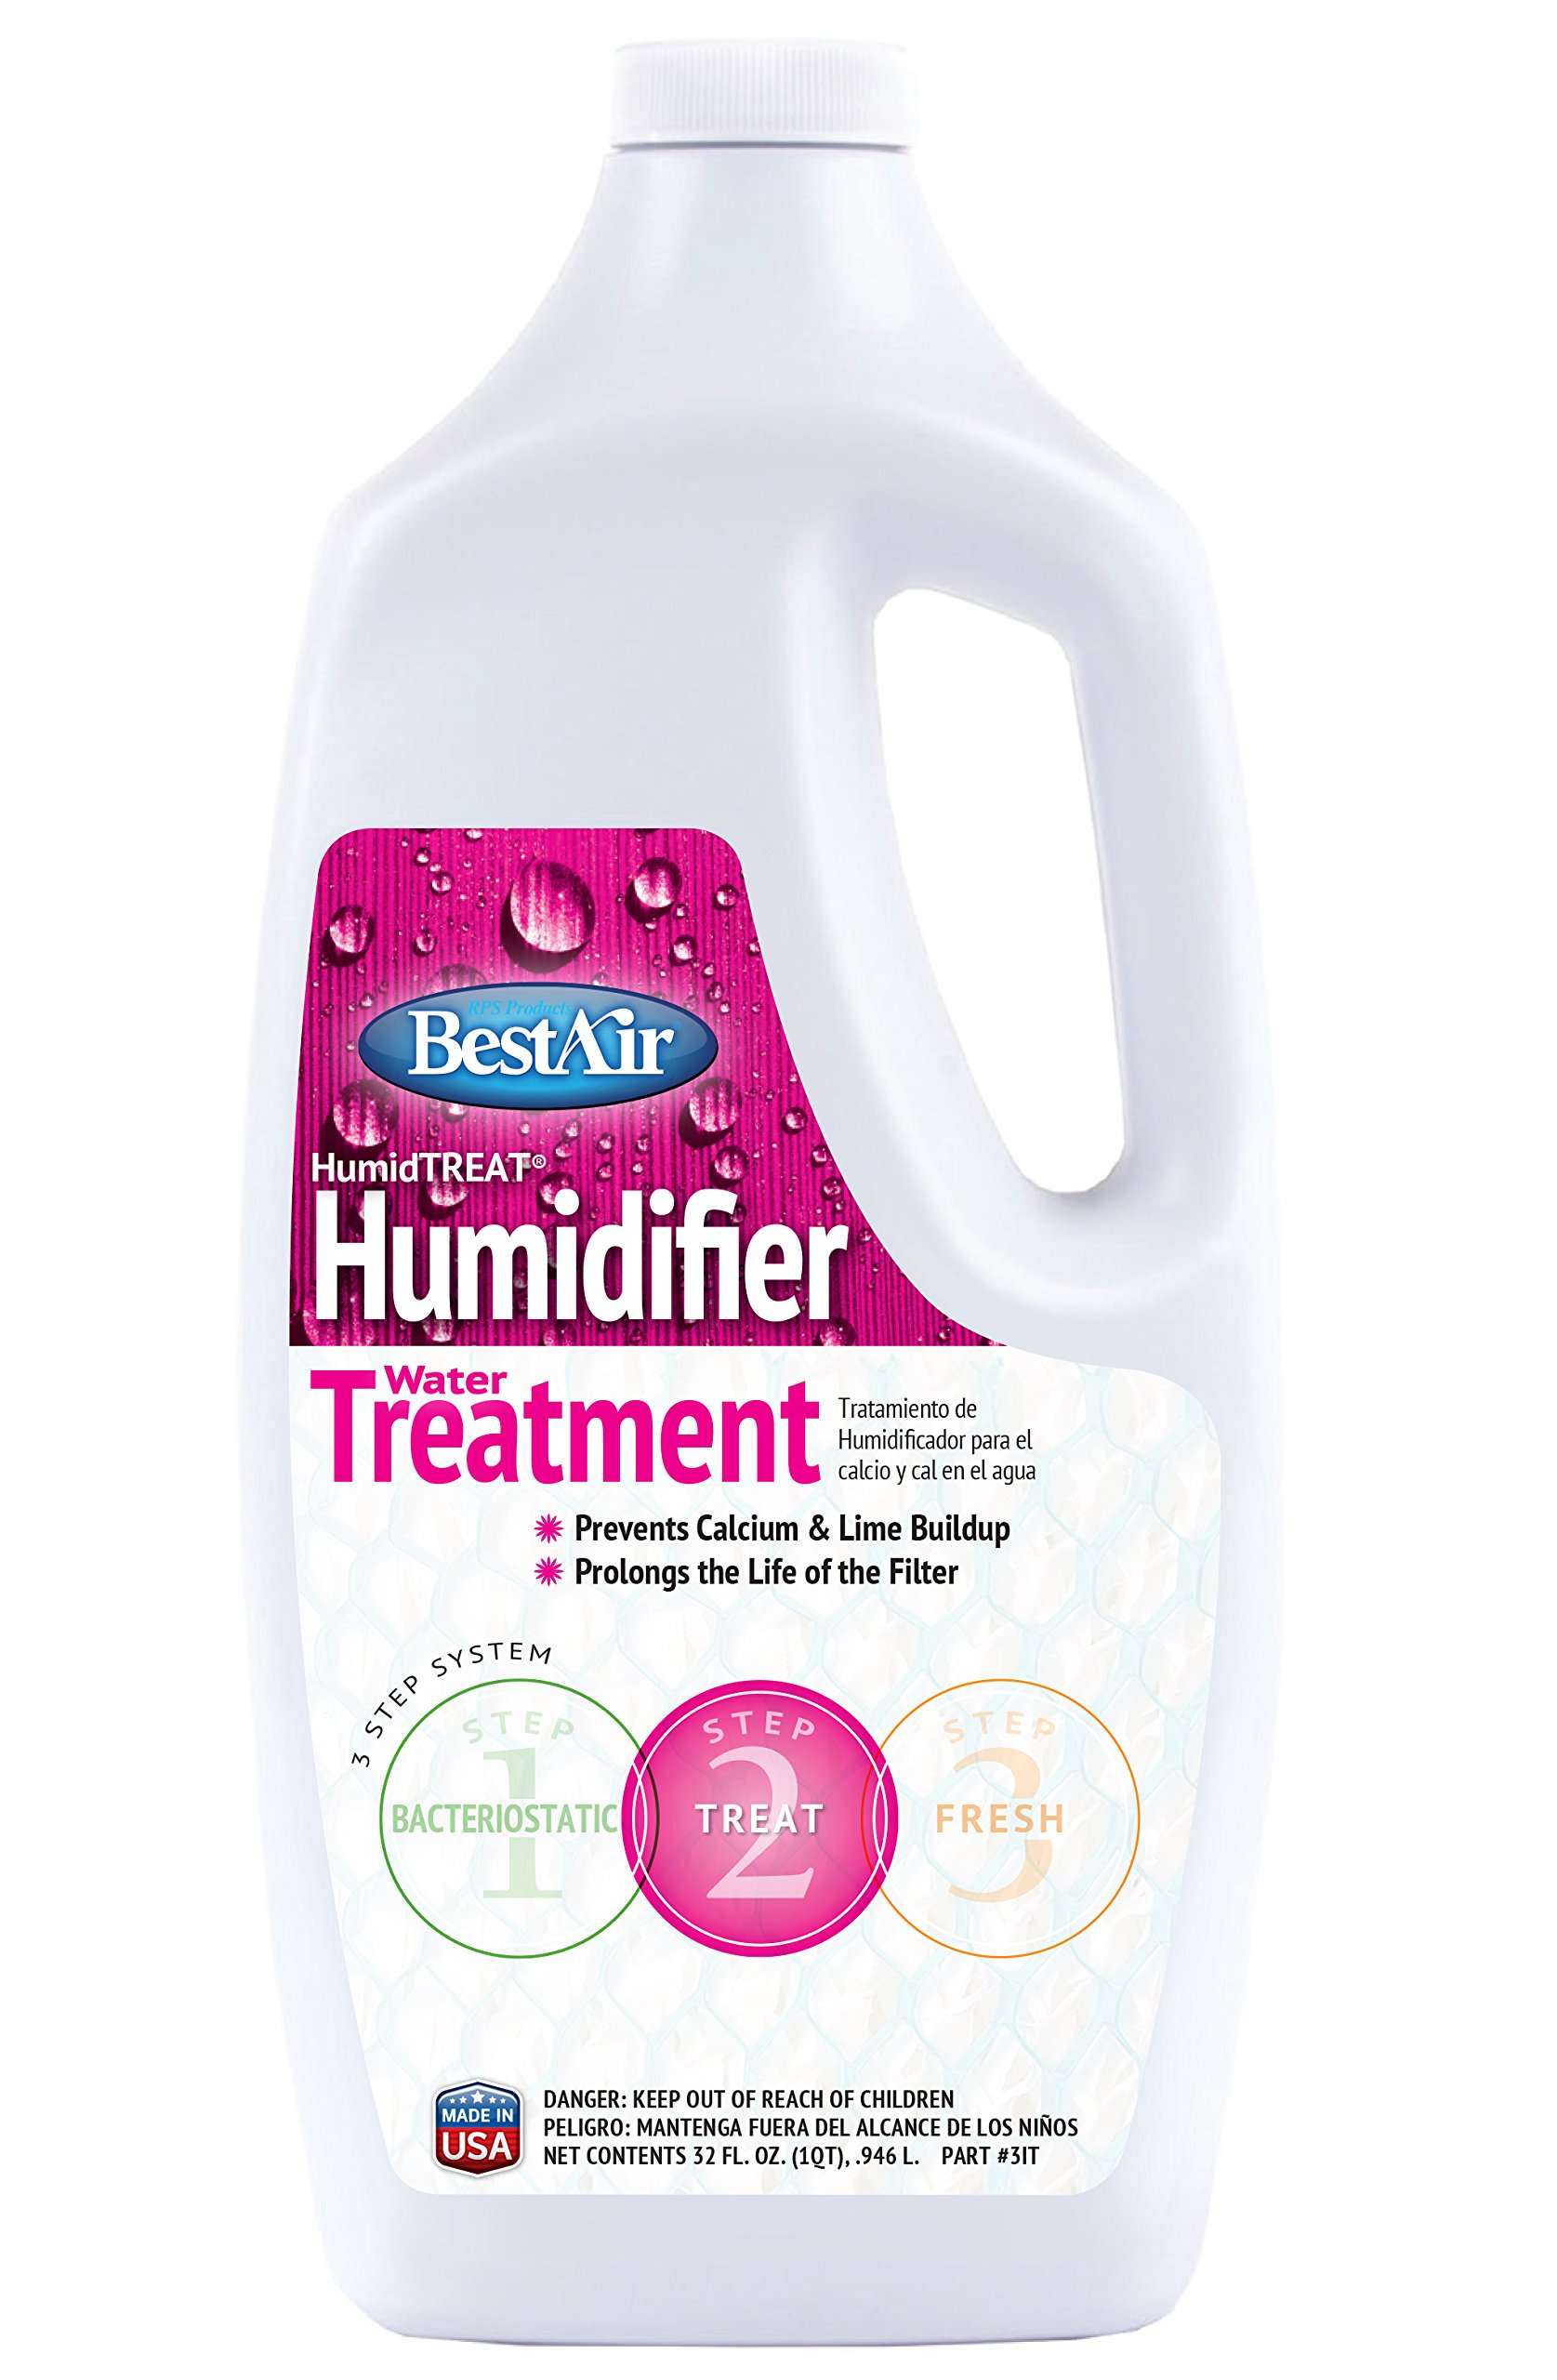 BestAir 1T, Humiditreat Extra Strength Humidifier Water Treatment, 32 oz